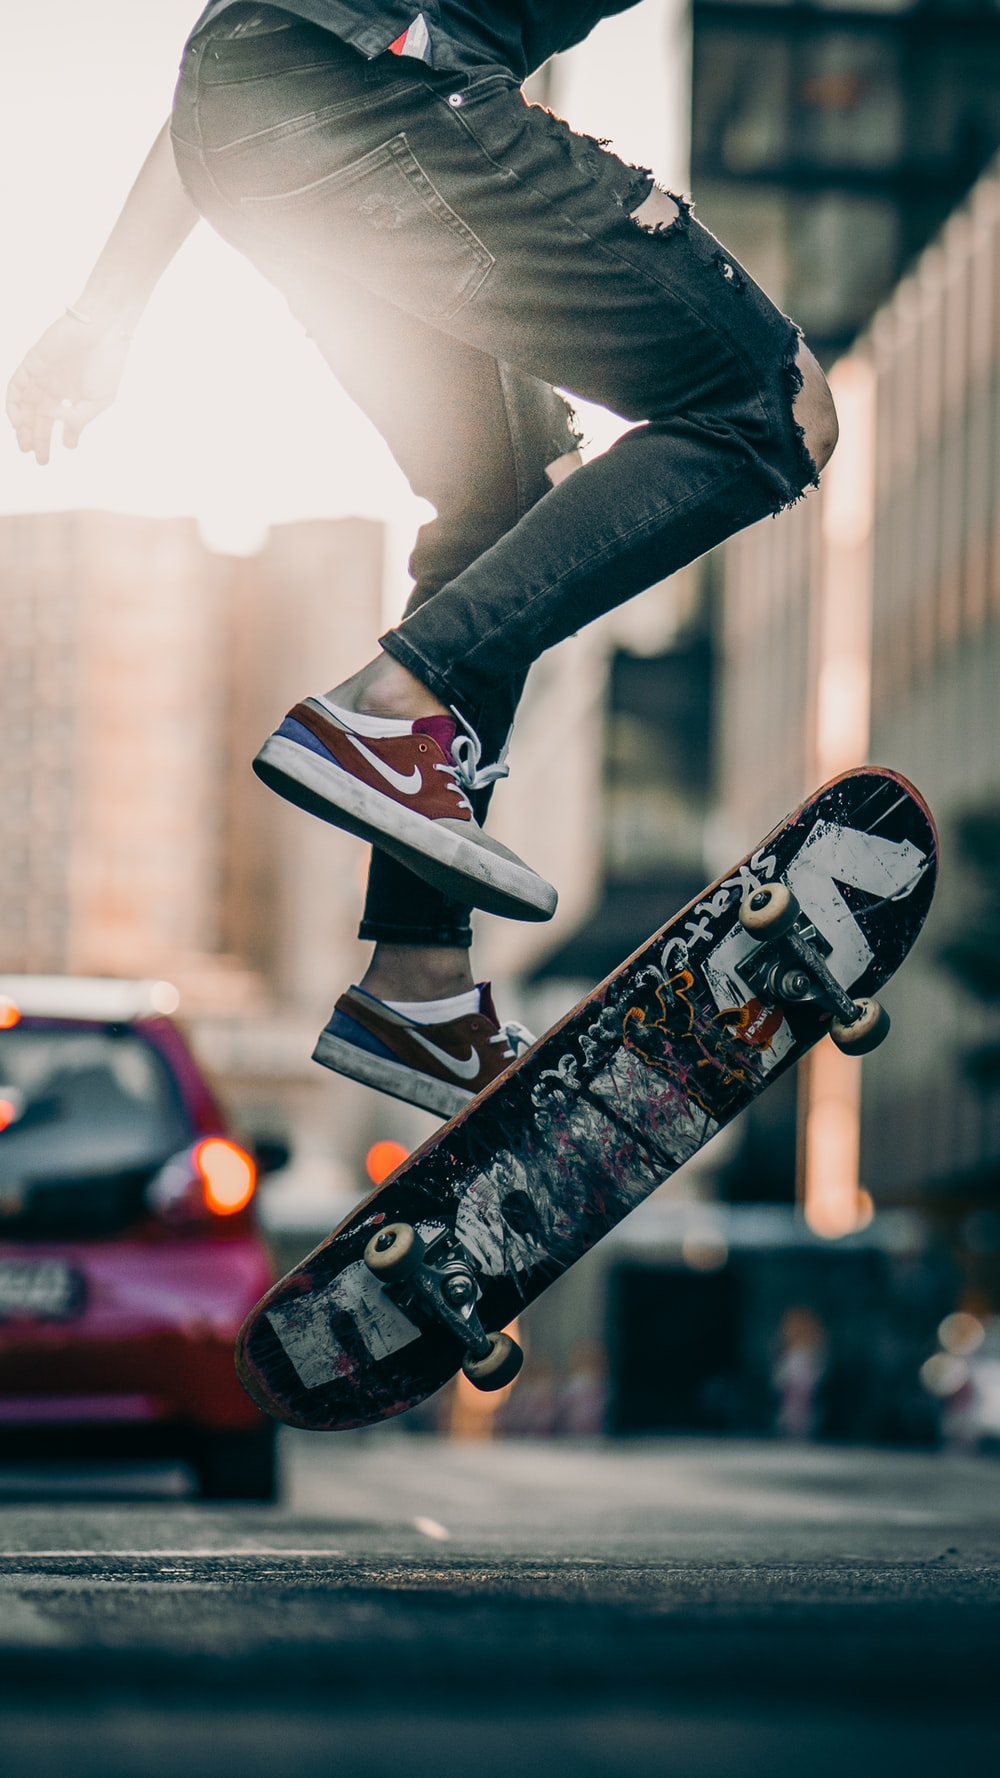 person in black pants and black and white sneakers jumping on skateboard